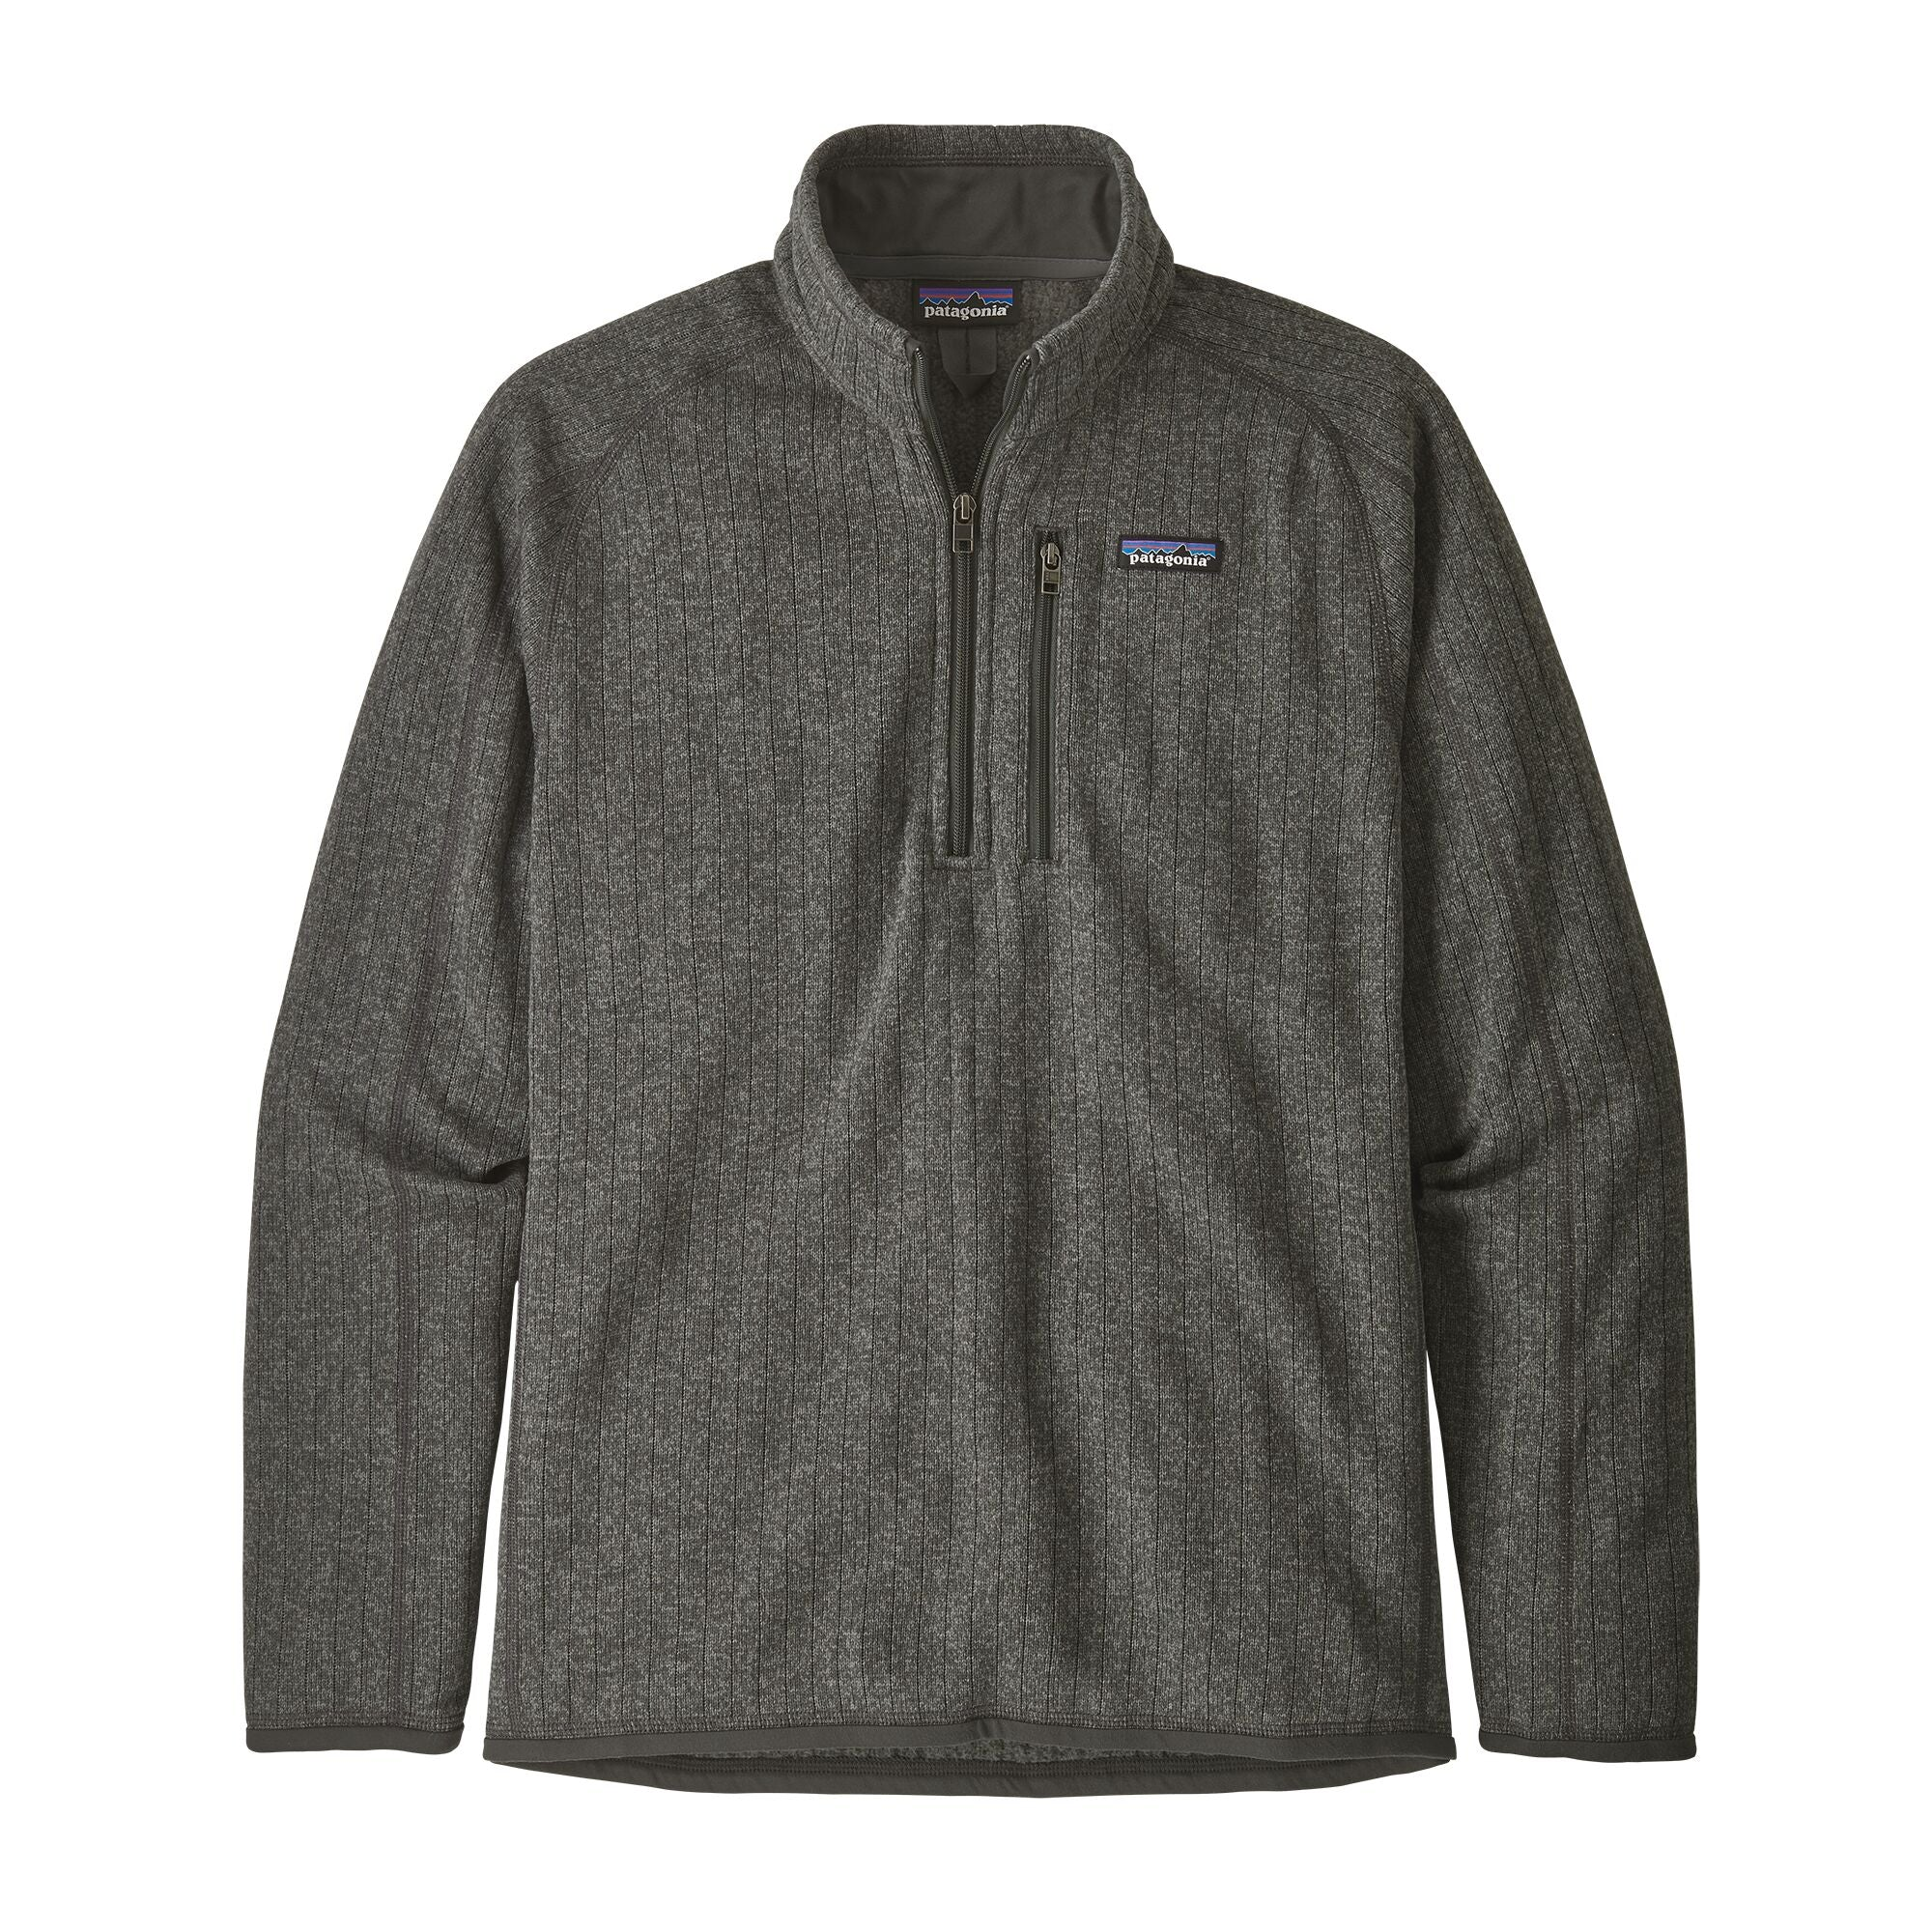 Patagonia Men's Better Sweater Rib 1/4 Zip